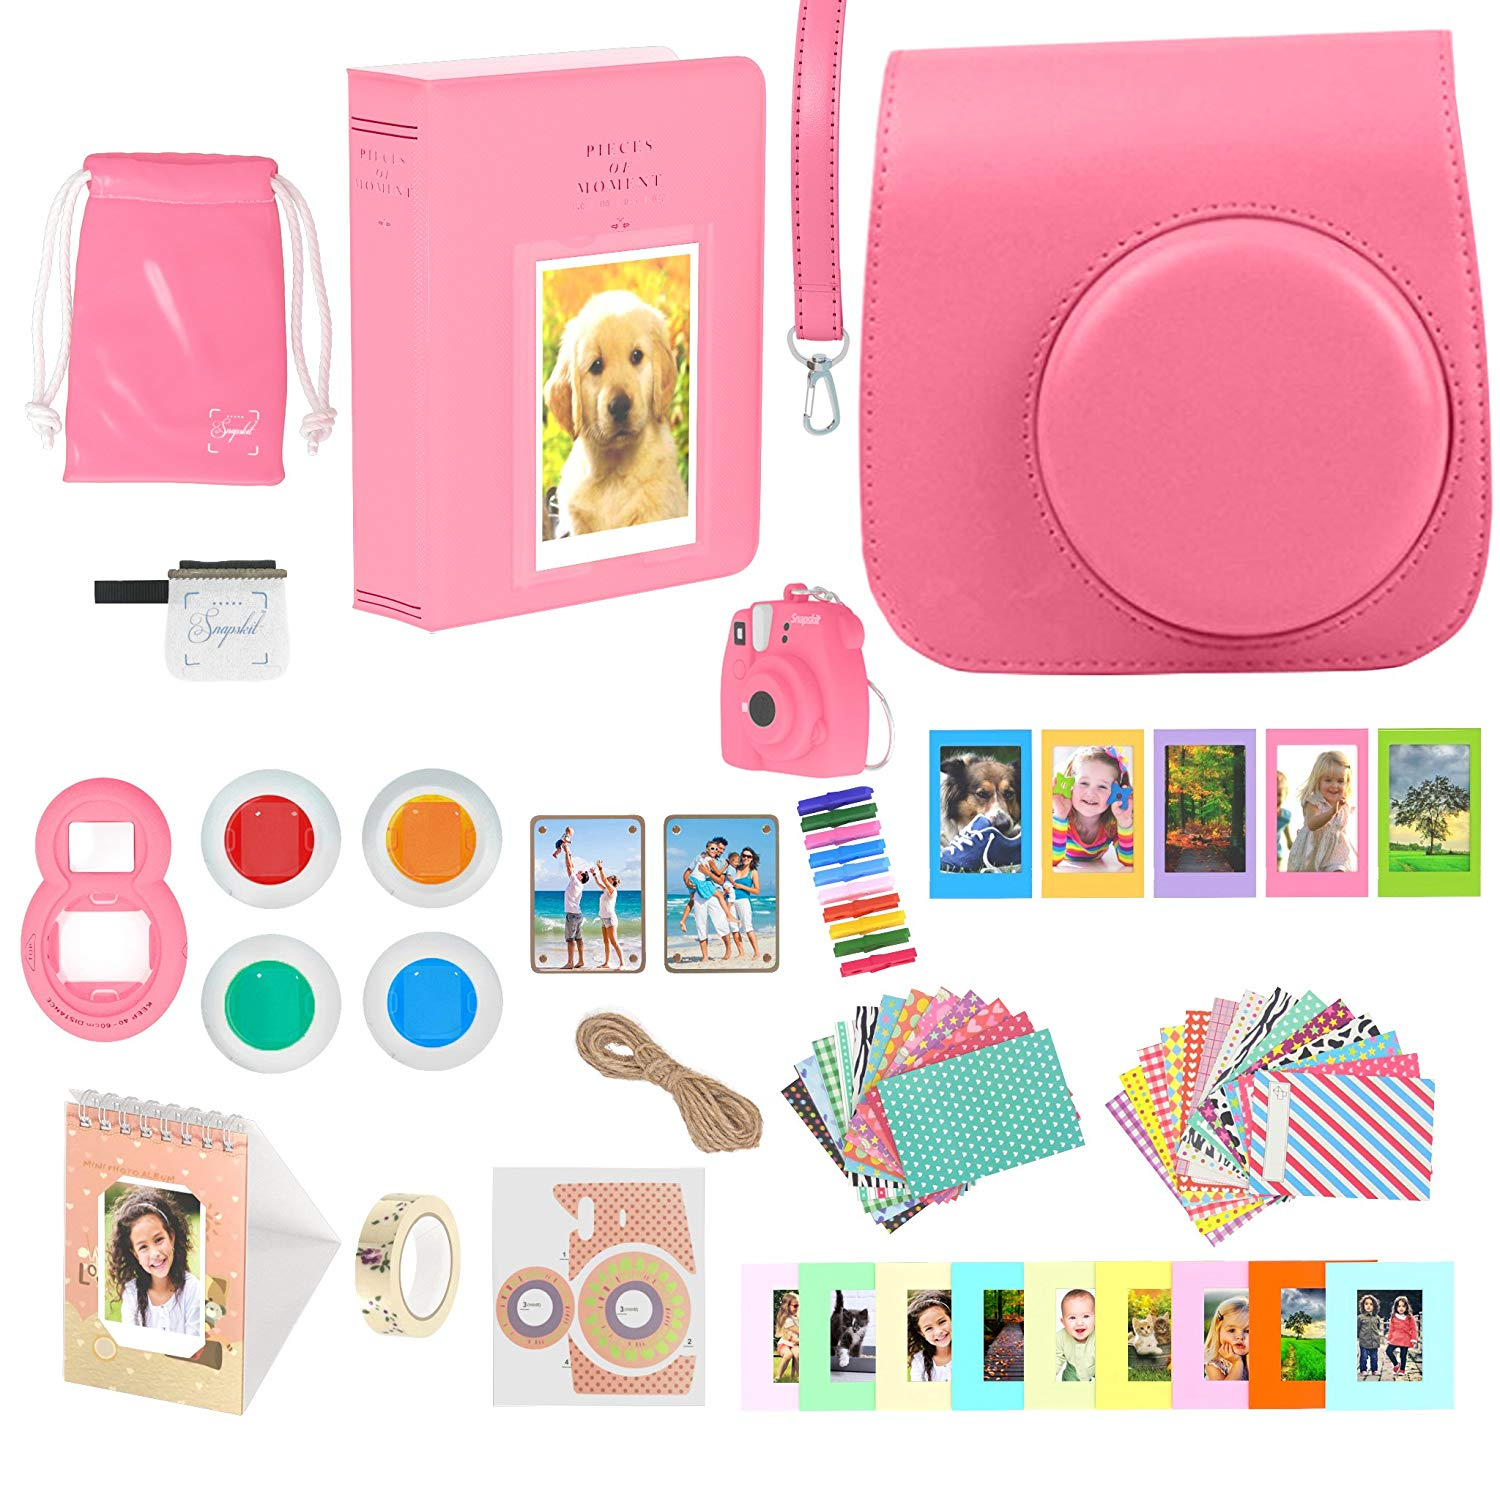 Accessories Bundle for Fujifilm Instax Mini 9 Camera - Flamingo Pink 16 Piece Kit Includes: Protective Case + Strap, 2 Photo Albums, Keychain, Hanging Frames, Selfie Lens, Magnets, Gift Box